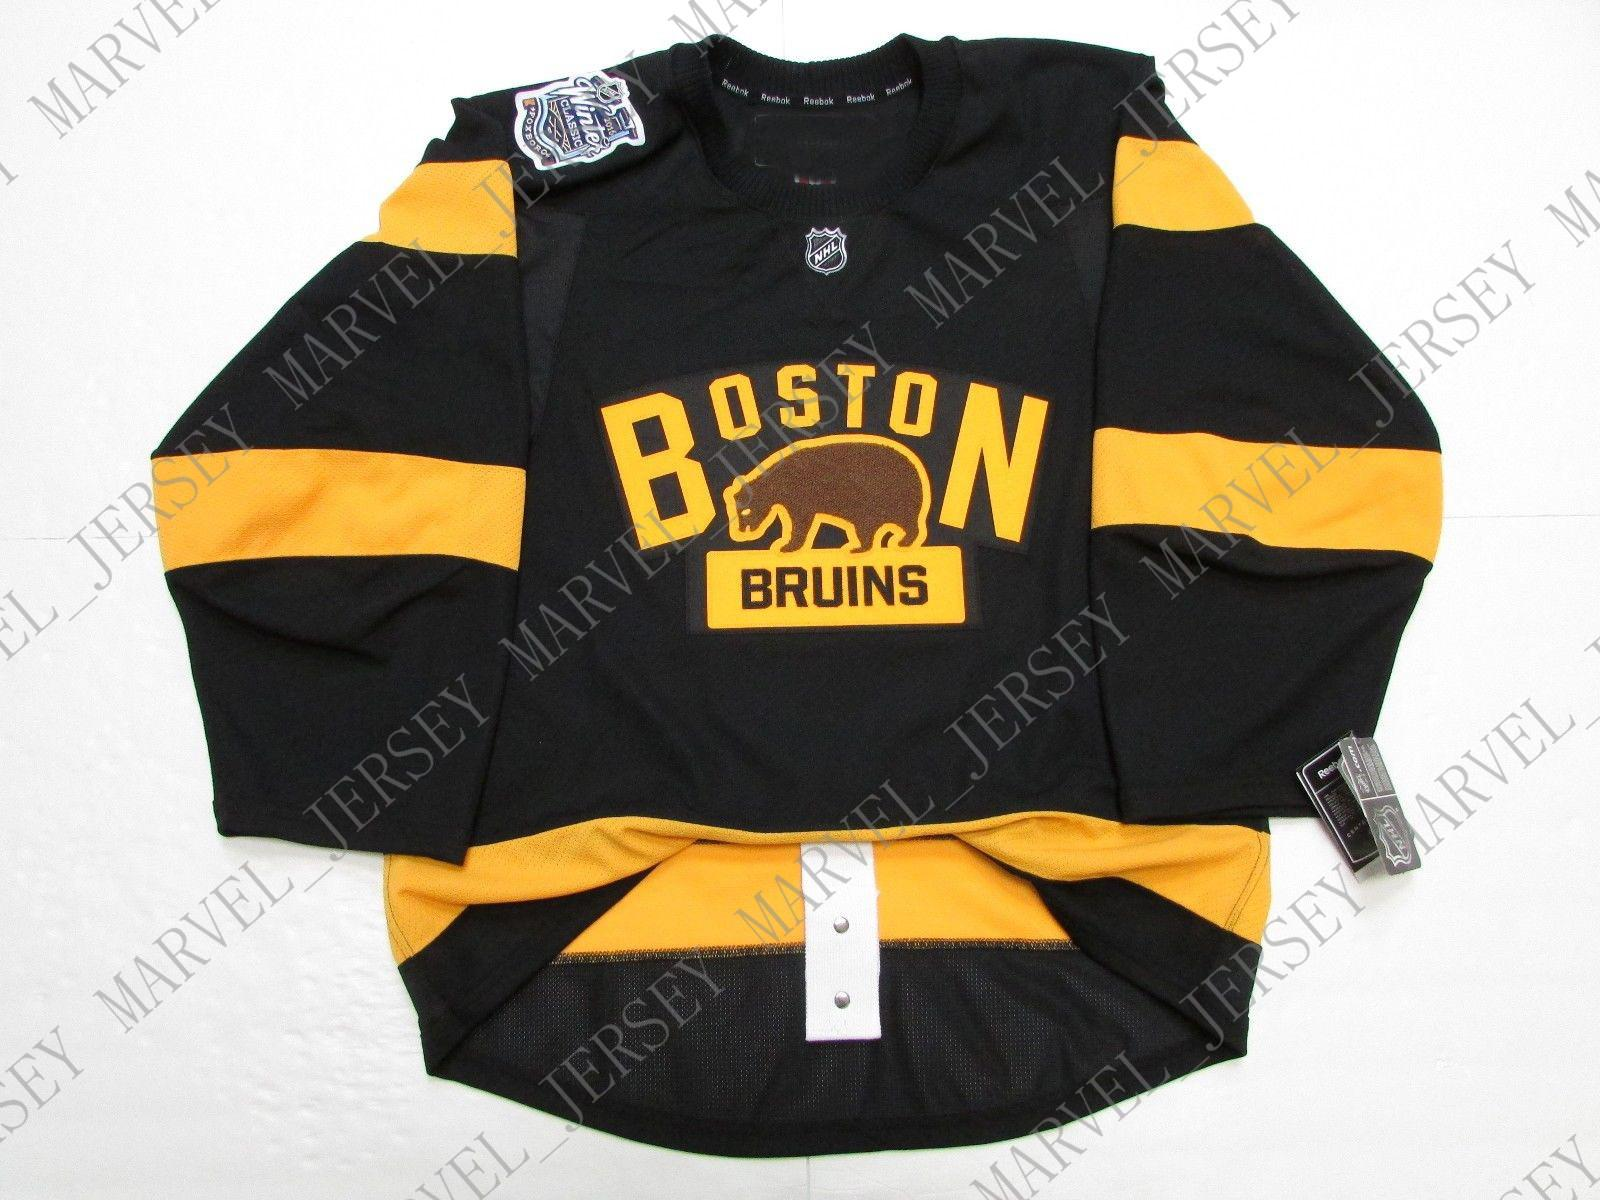 Cheap custom BOSTON BRUINS 2016 WINTER CLASSIC JERSEY WITH PATCH stitch add any number any name Mens Hockey Jersey XS-5XL